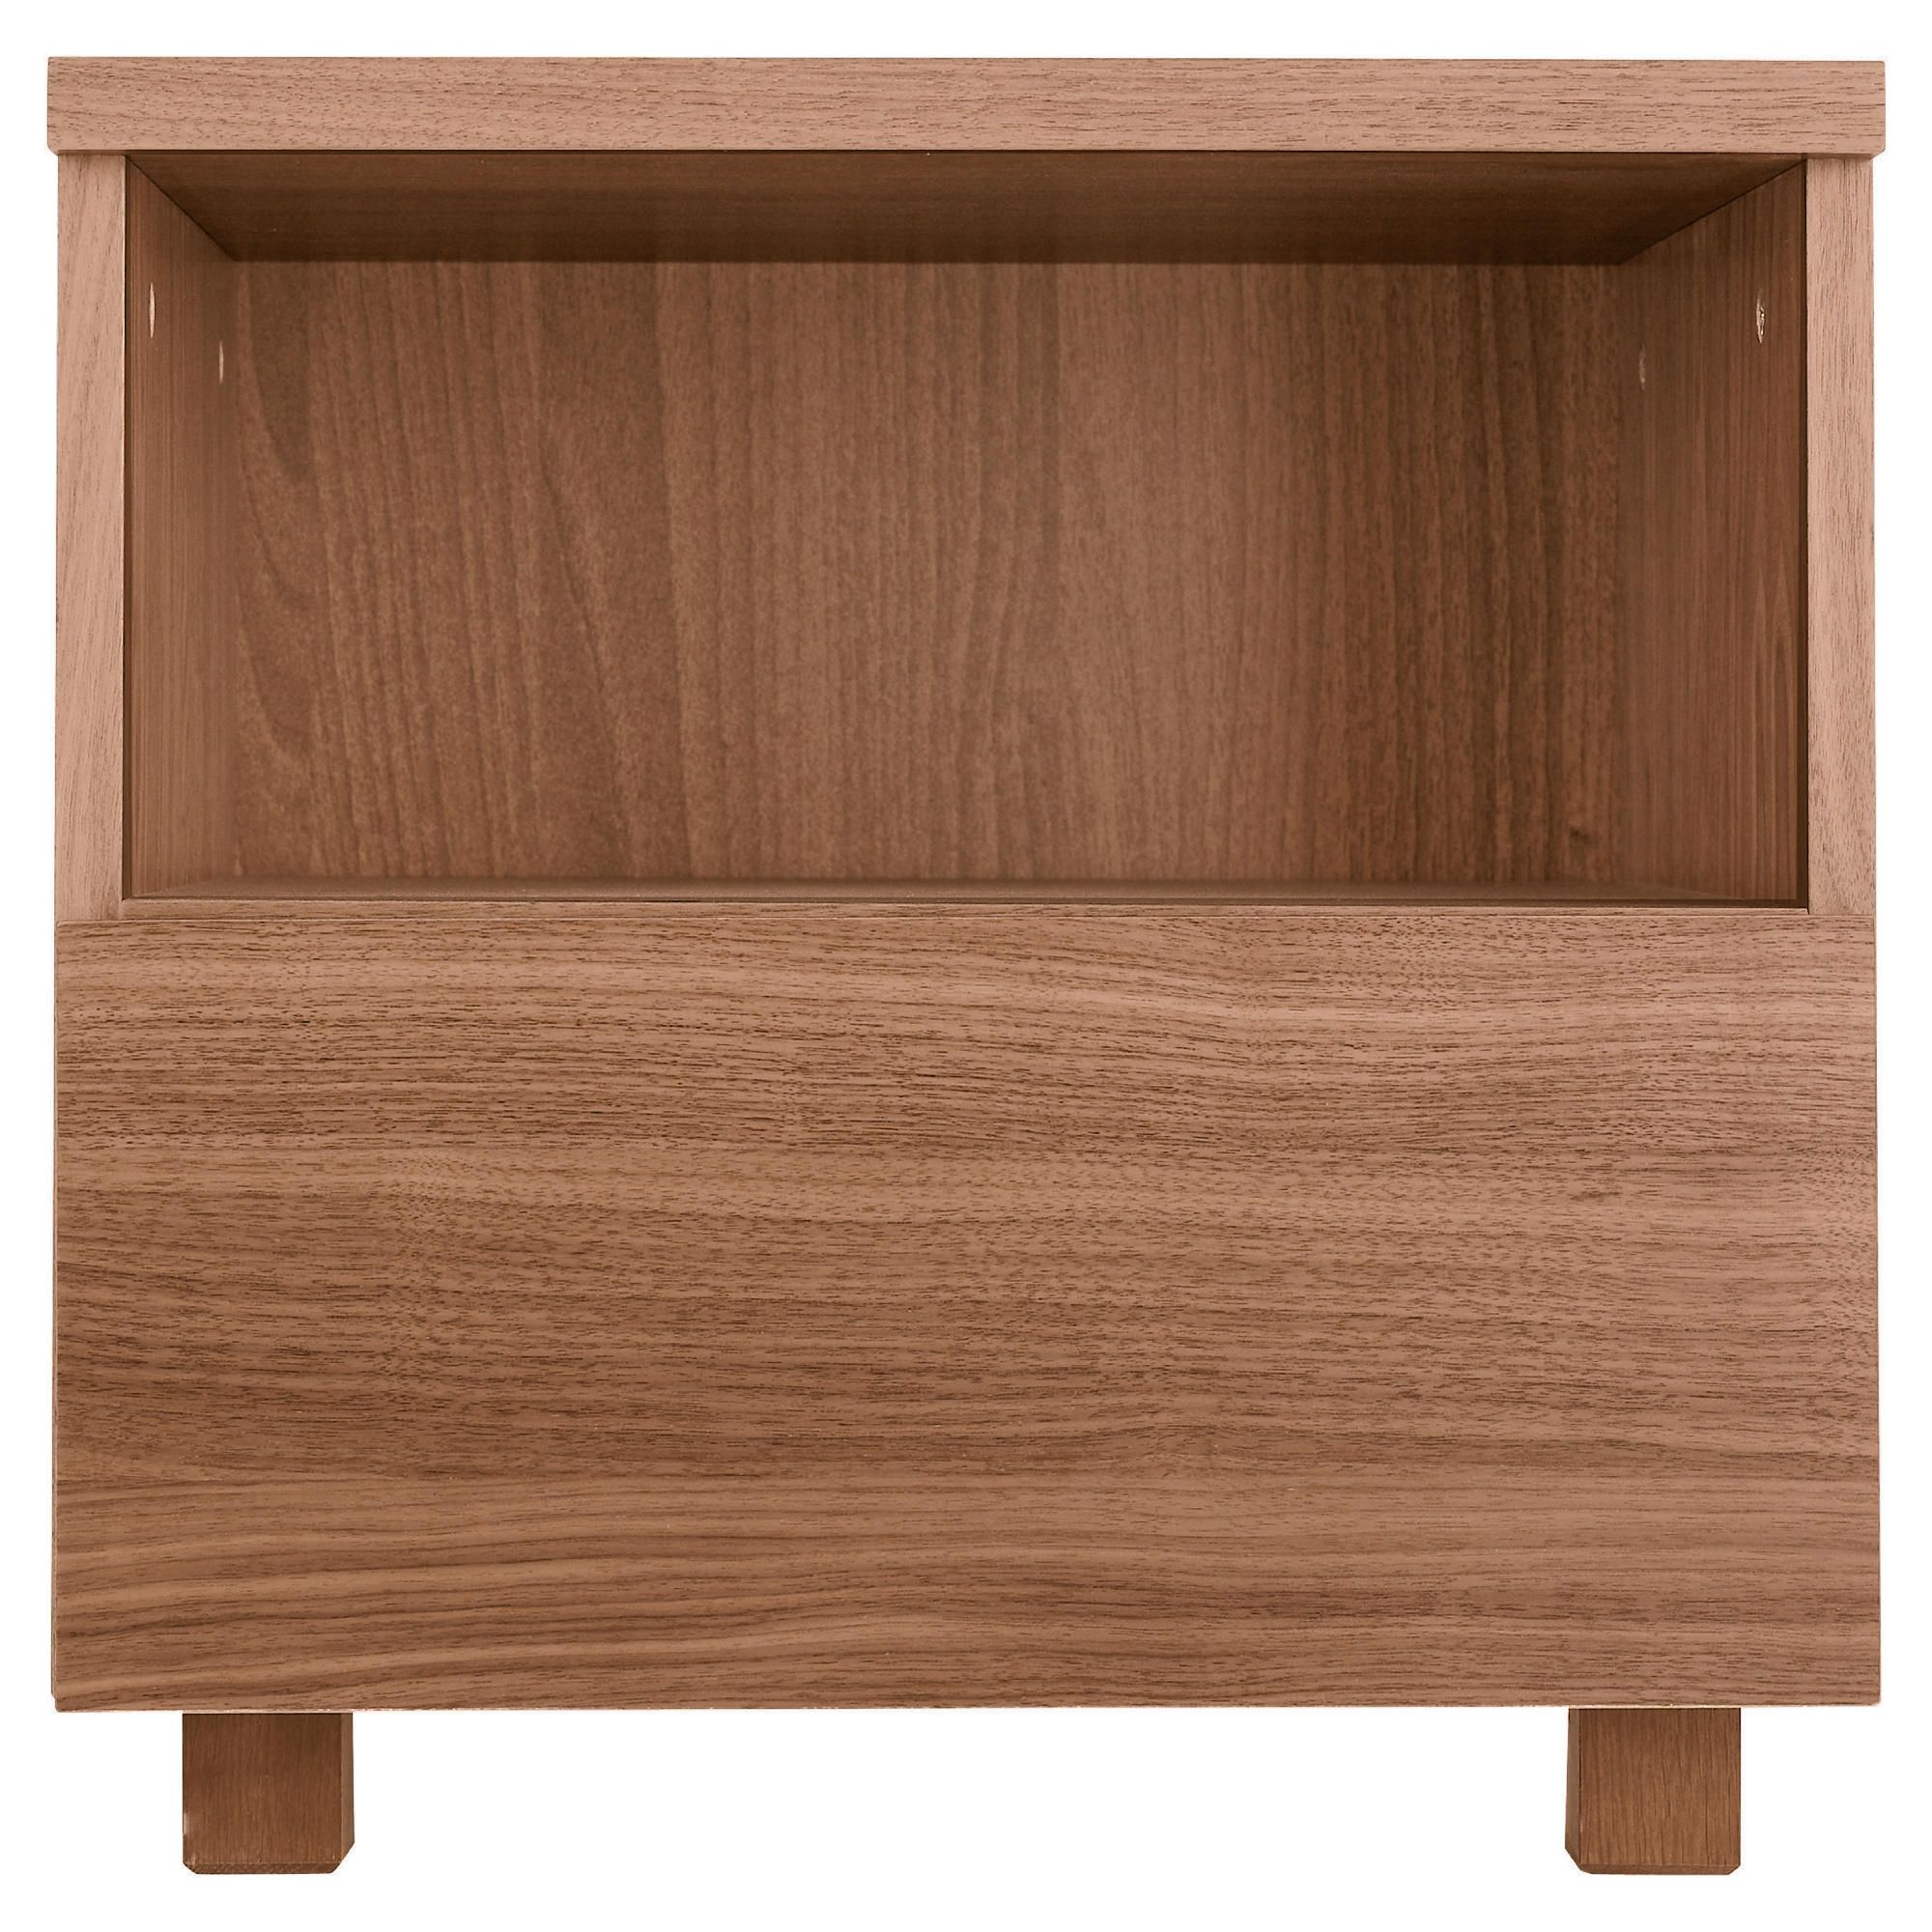 Maddox Bedside Chest, Walnut Veneer